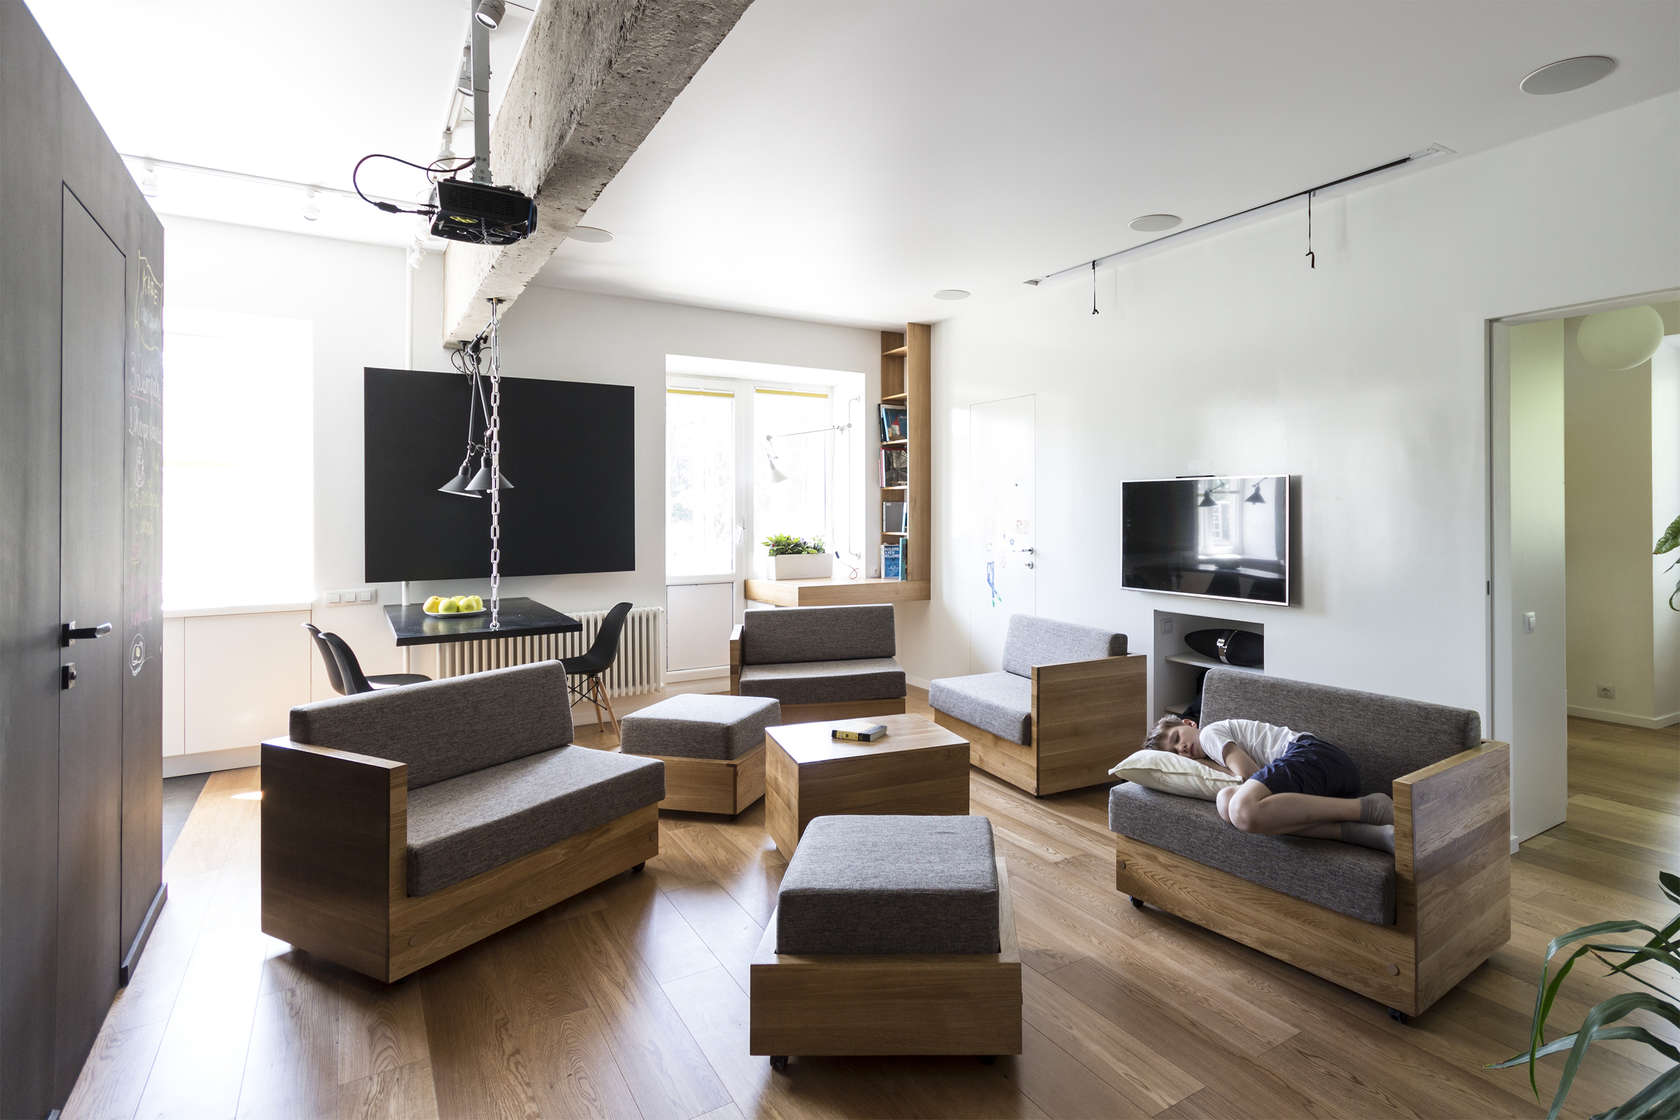 Studio Apartment Separation: Nyc studio apartment living ...